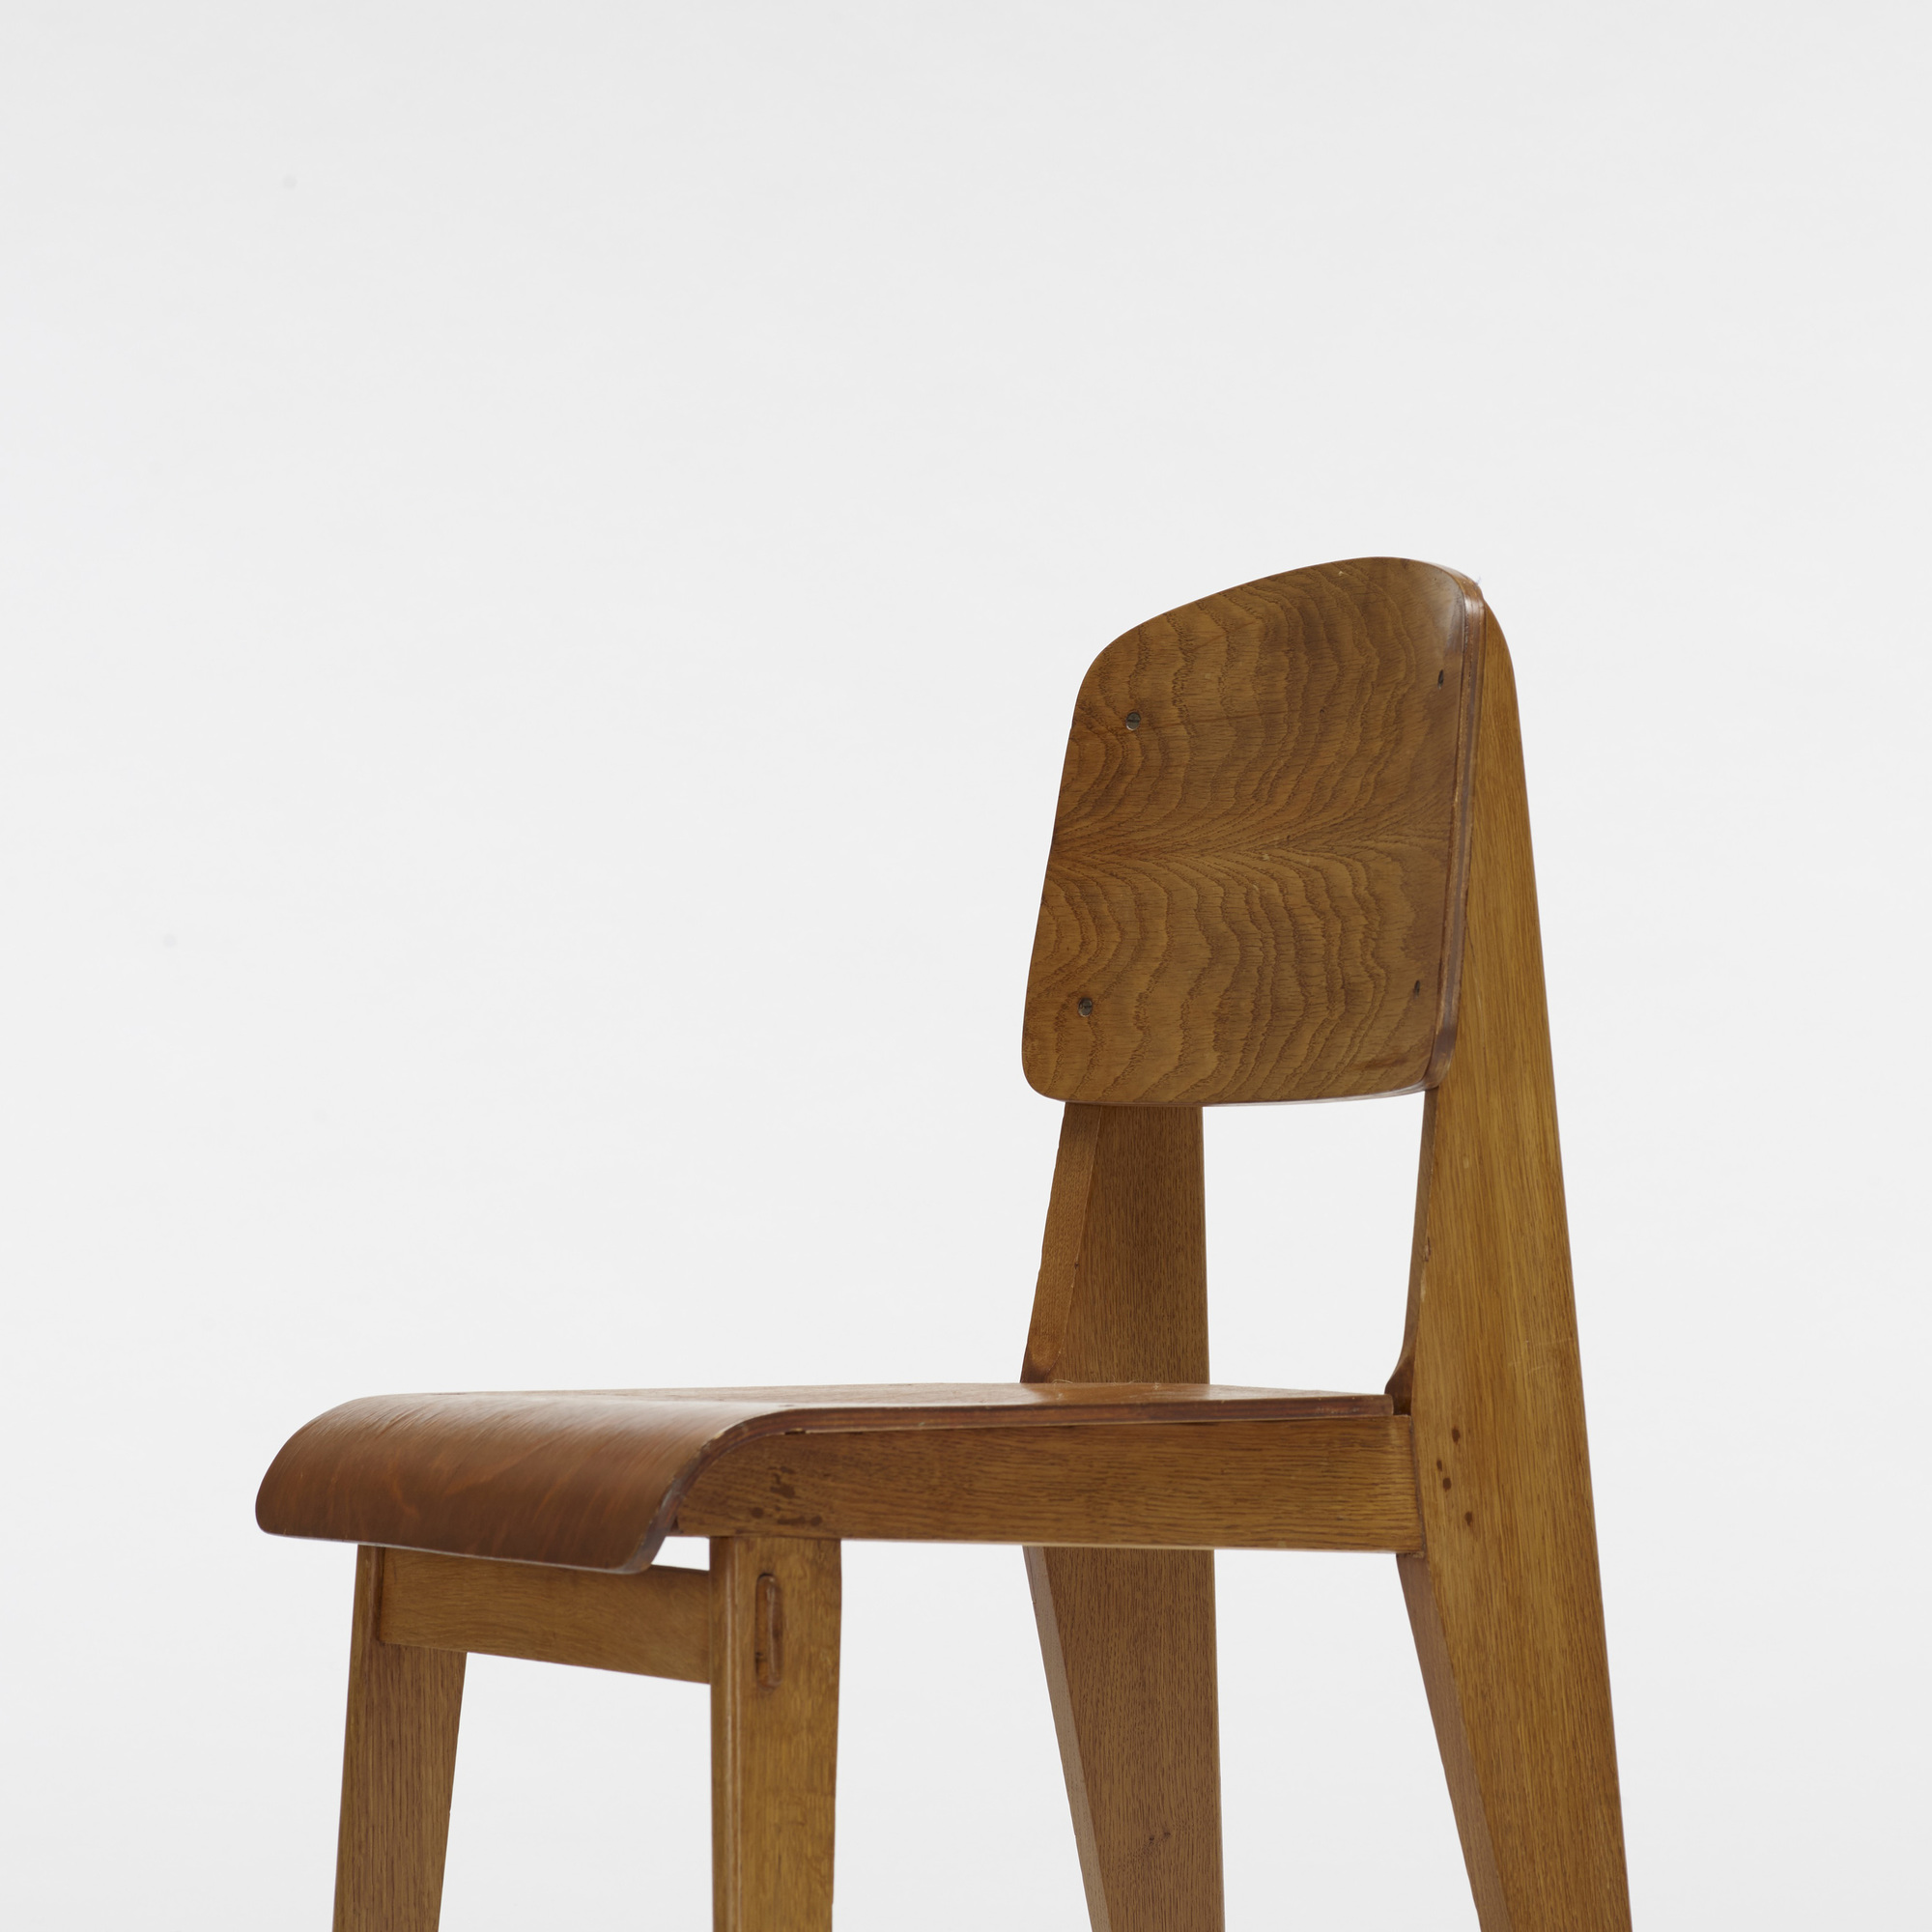 Merveilleux ... 133: Jean Prouvé / Standard Chair, No. 305 (3 Of 4)